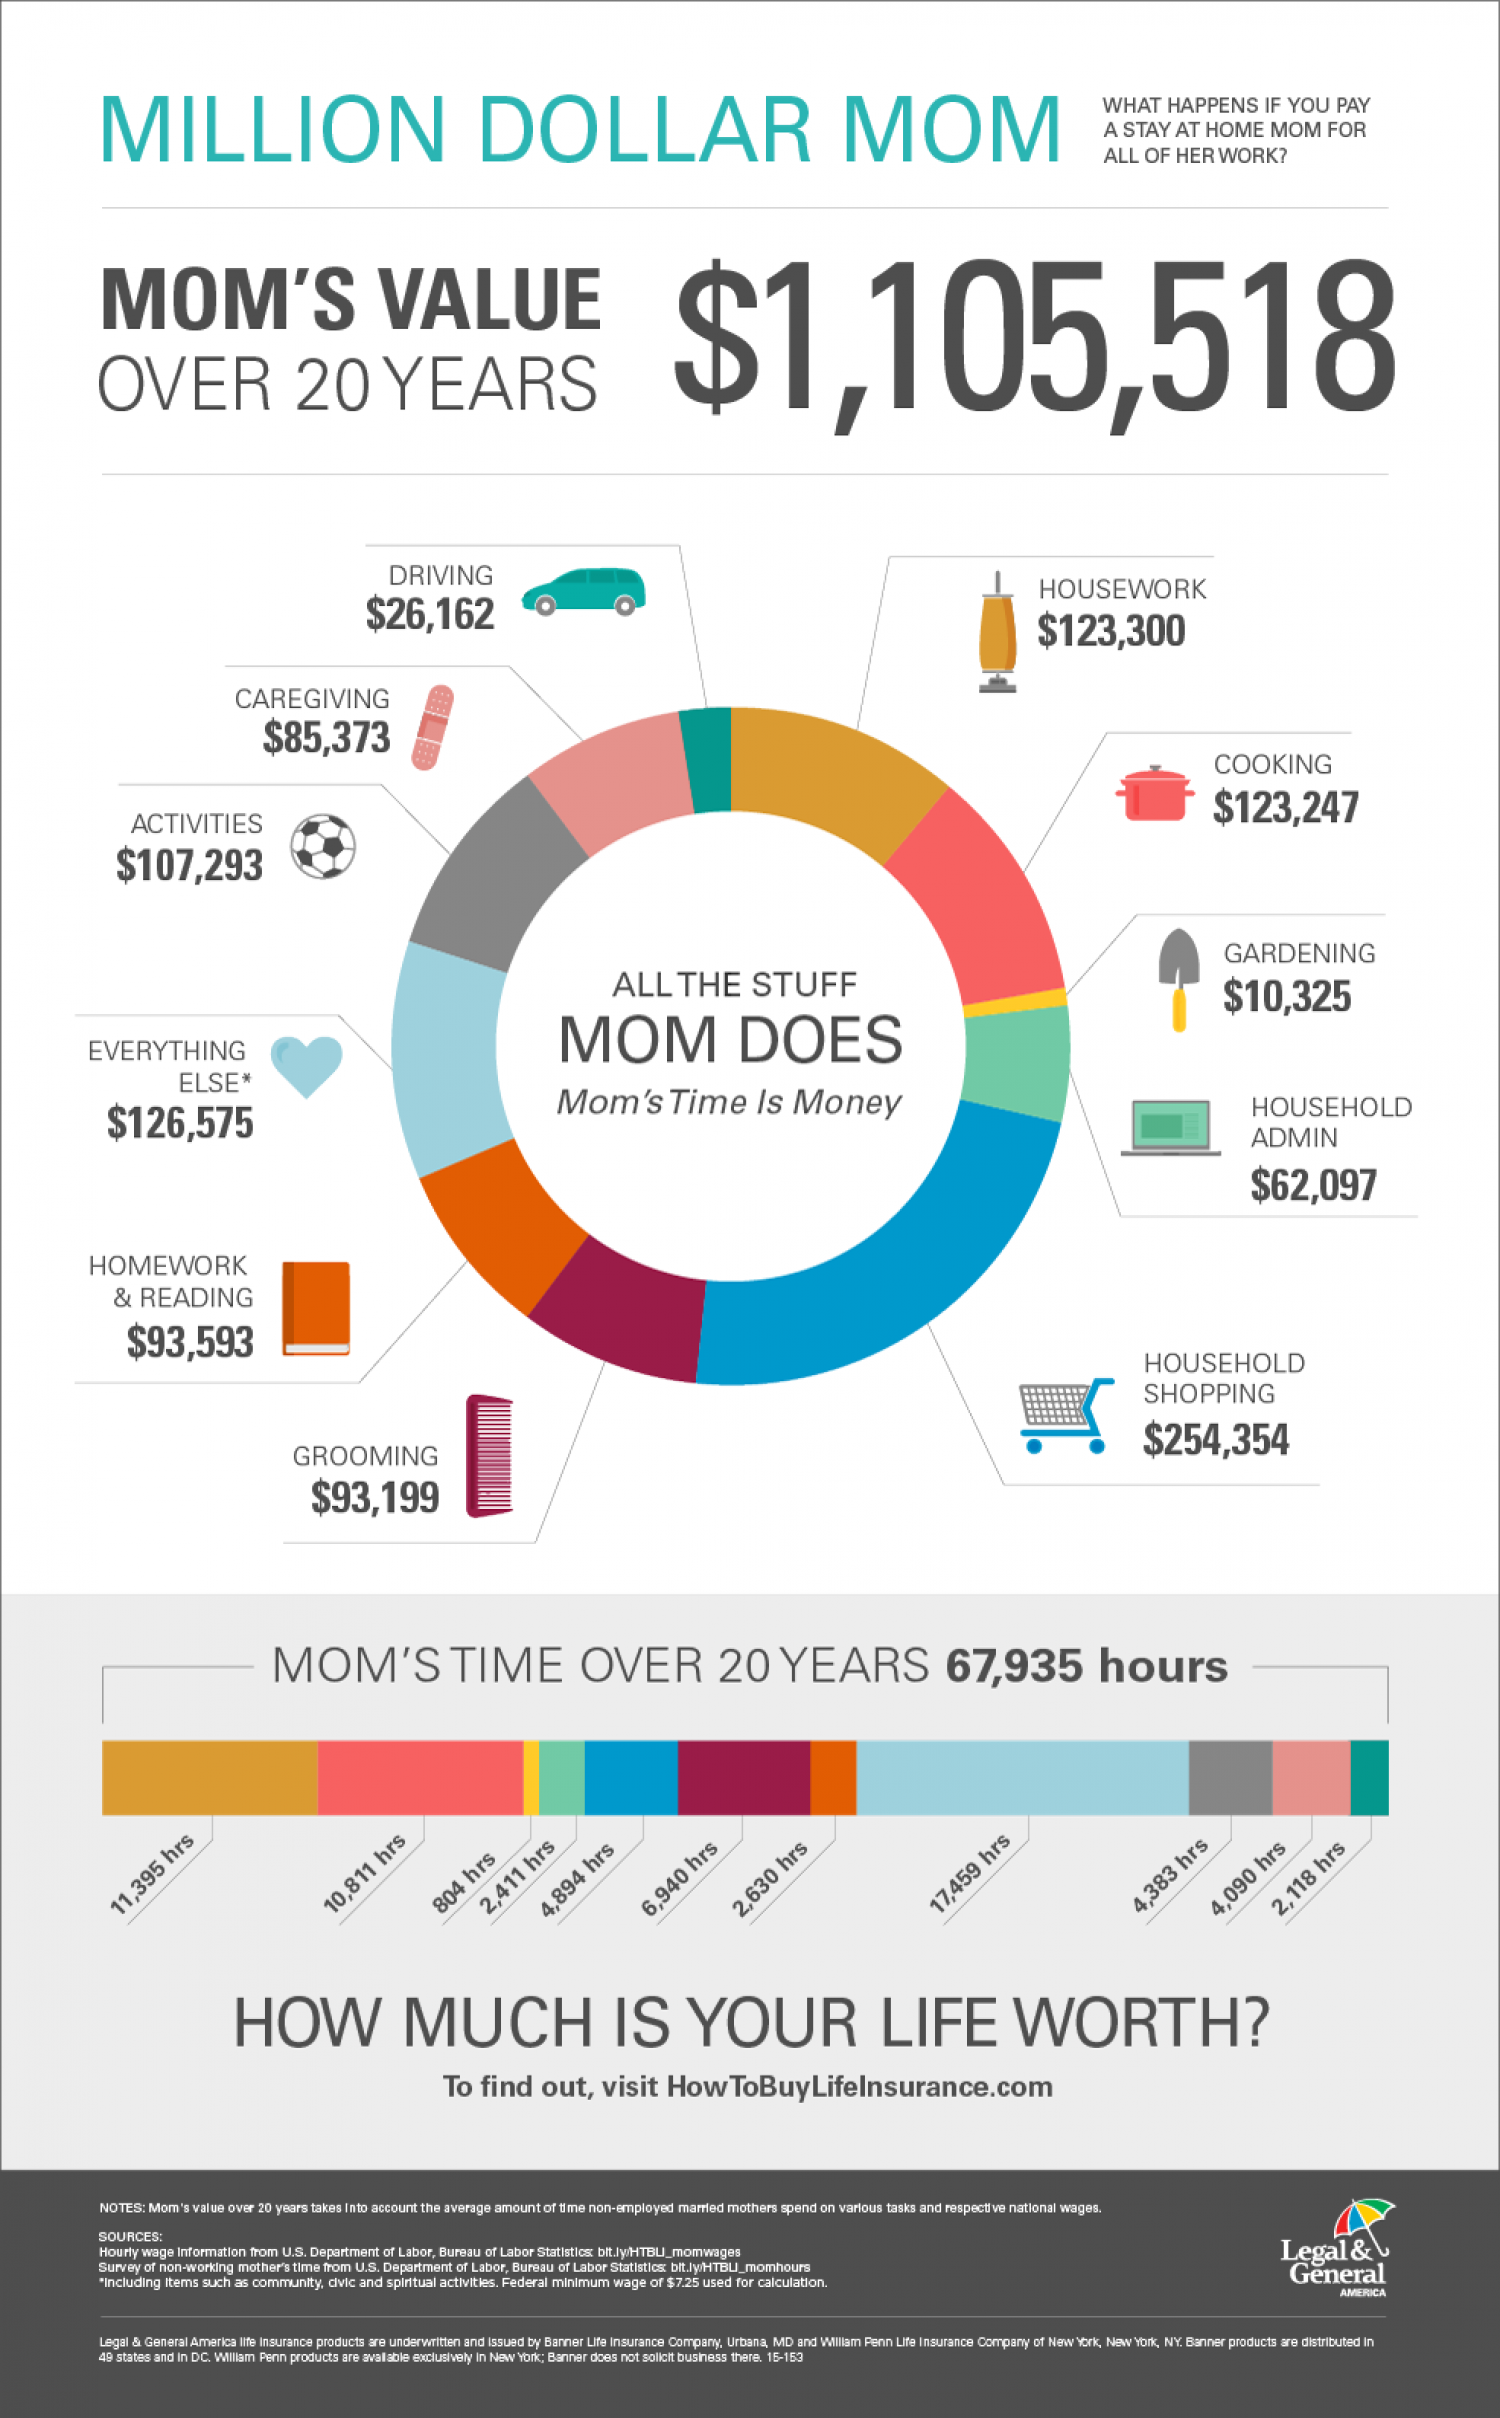 Replacing Mom would cost $1,105,518. Infographic